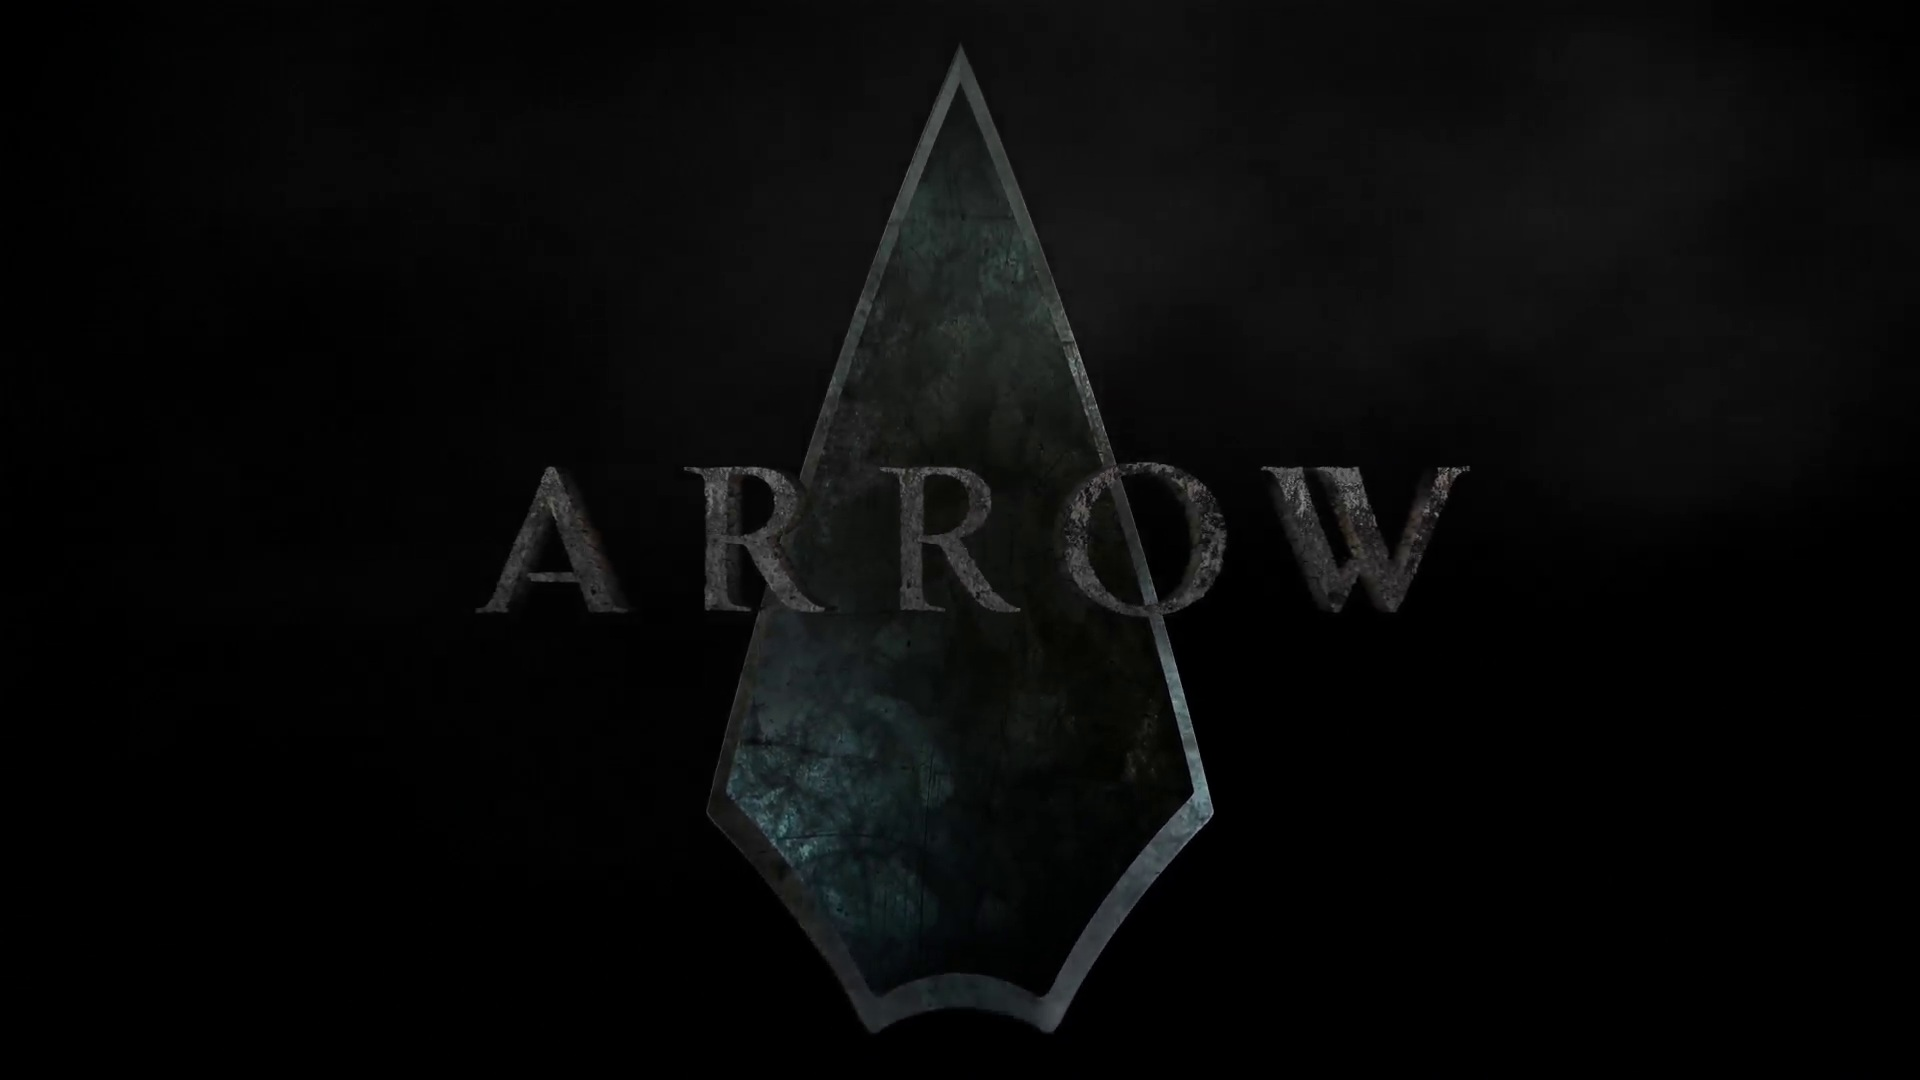 Arrow Wallpaper 4